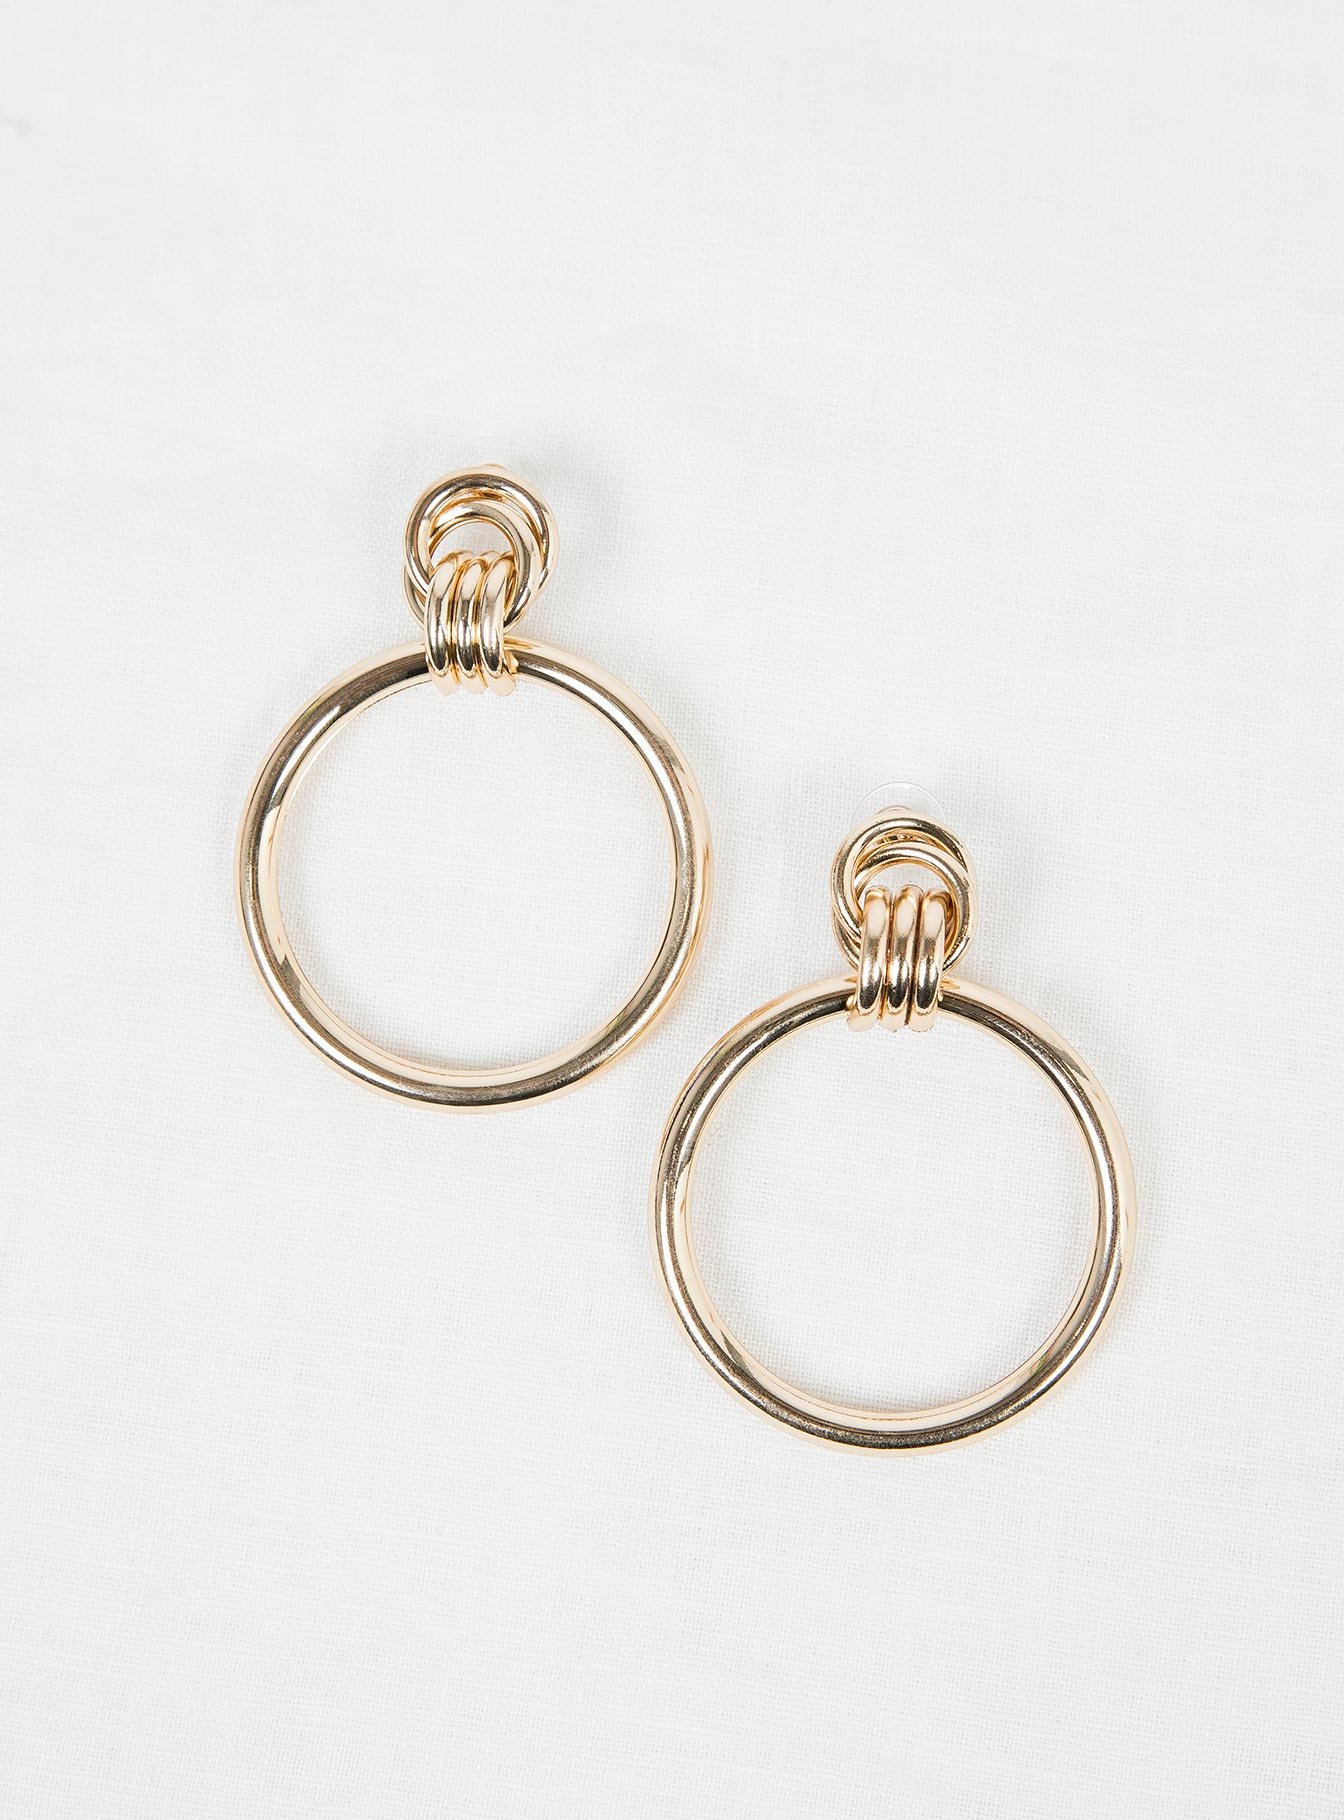 Nailey Earrings Gold